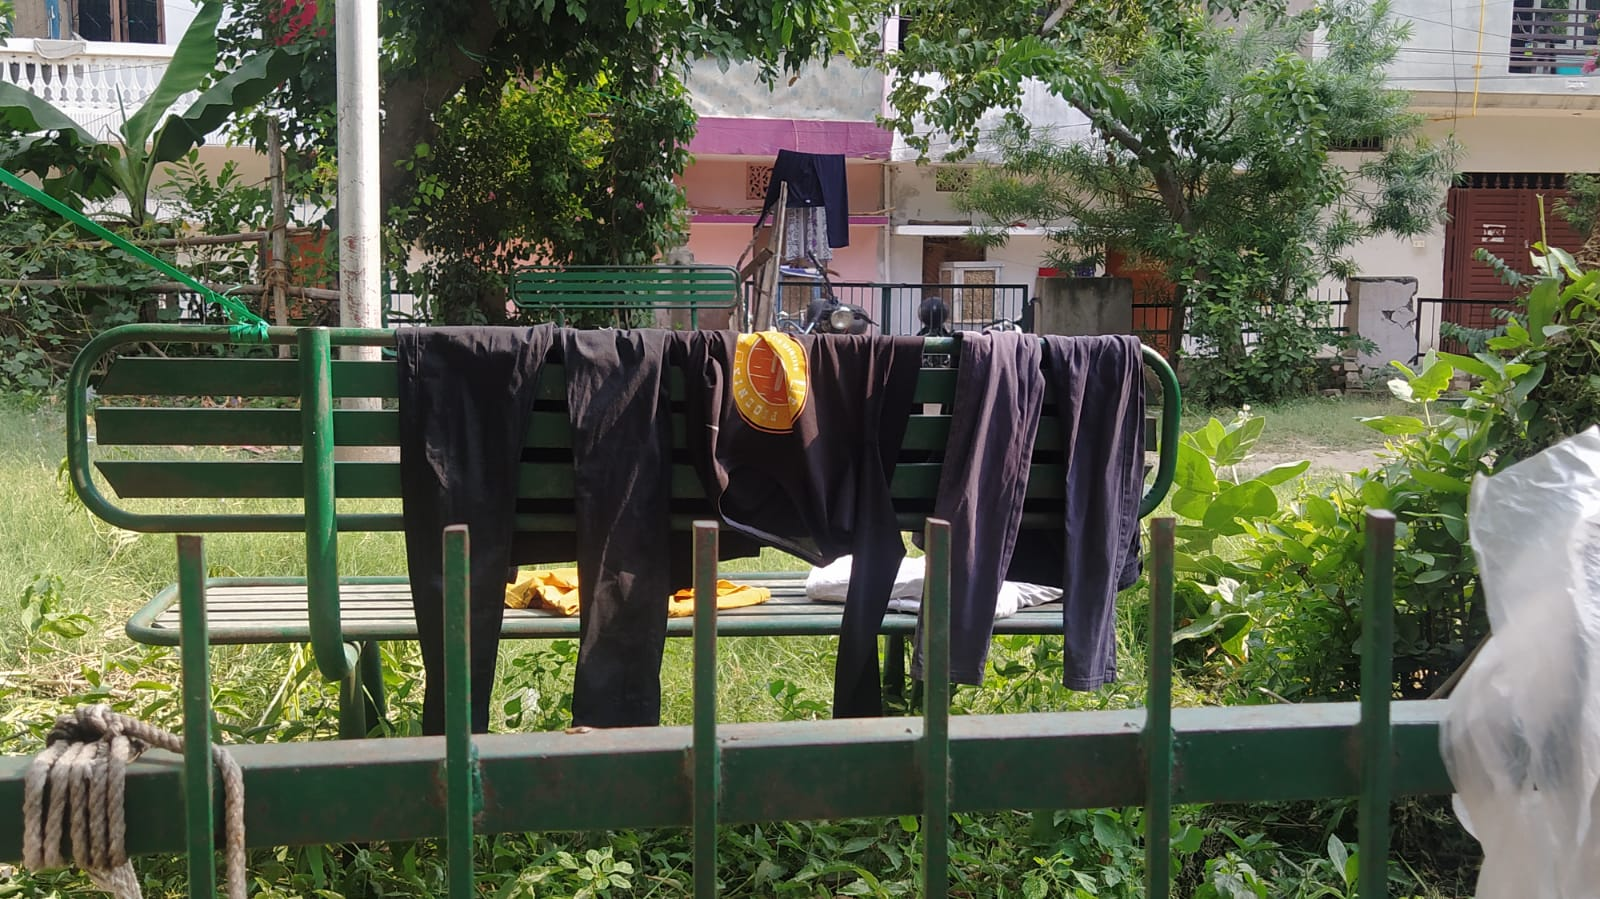 bench turned into a space to dry clothes